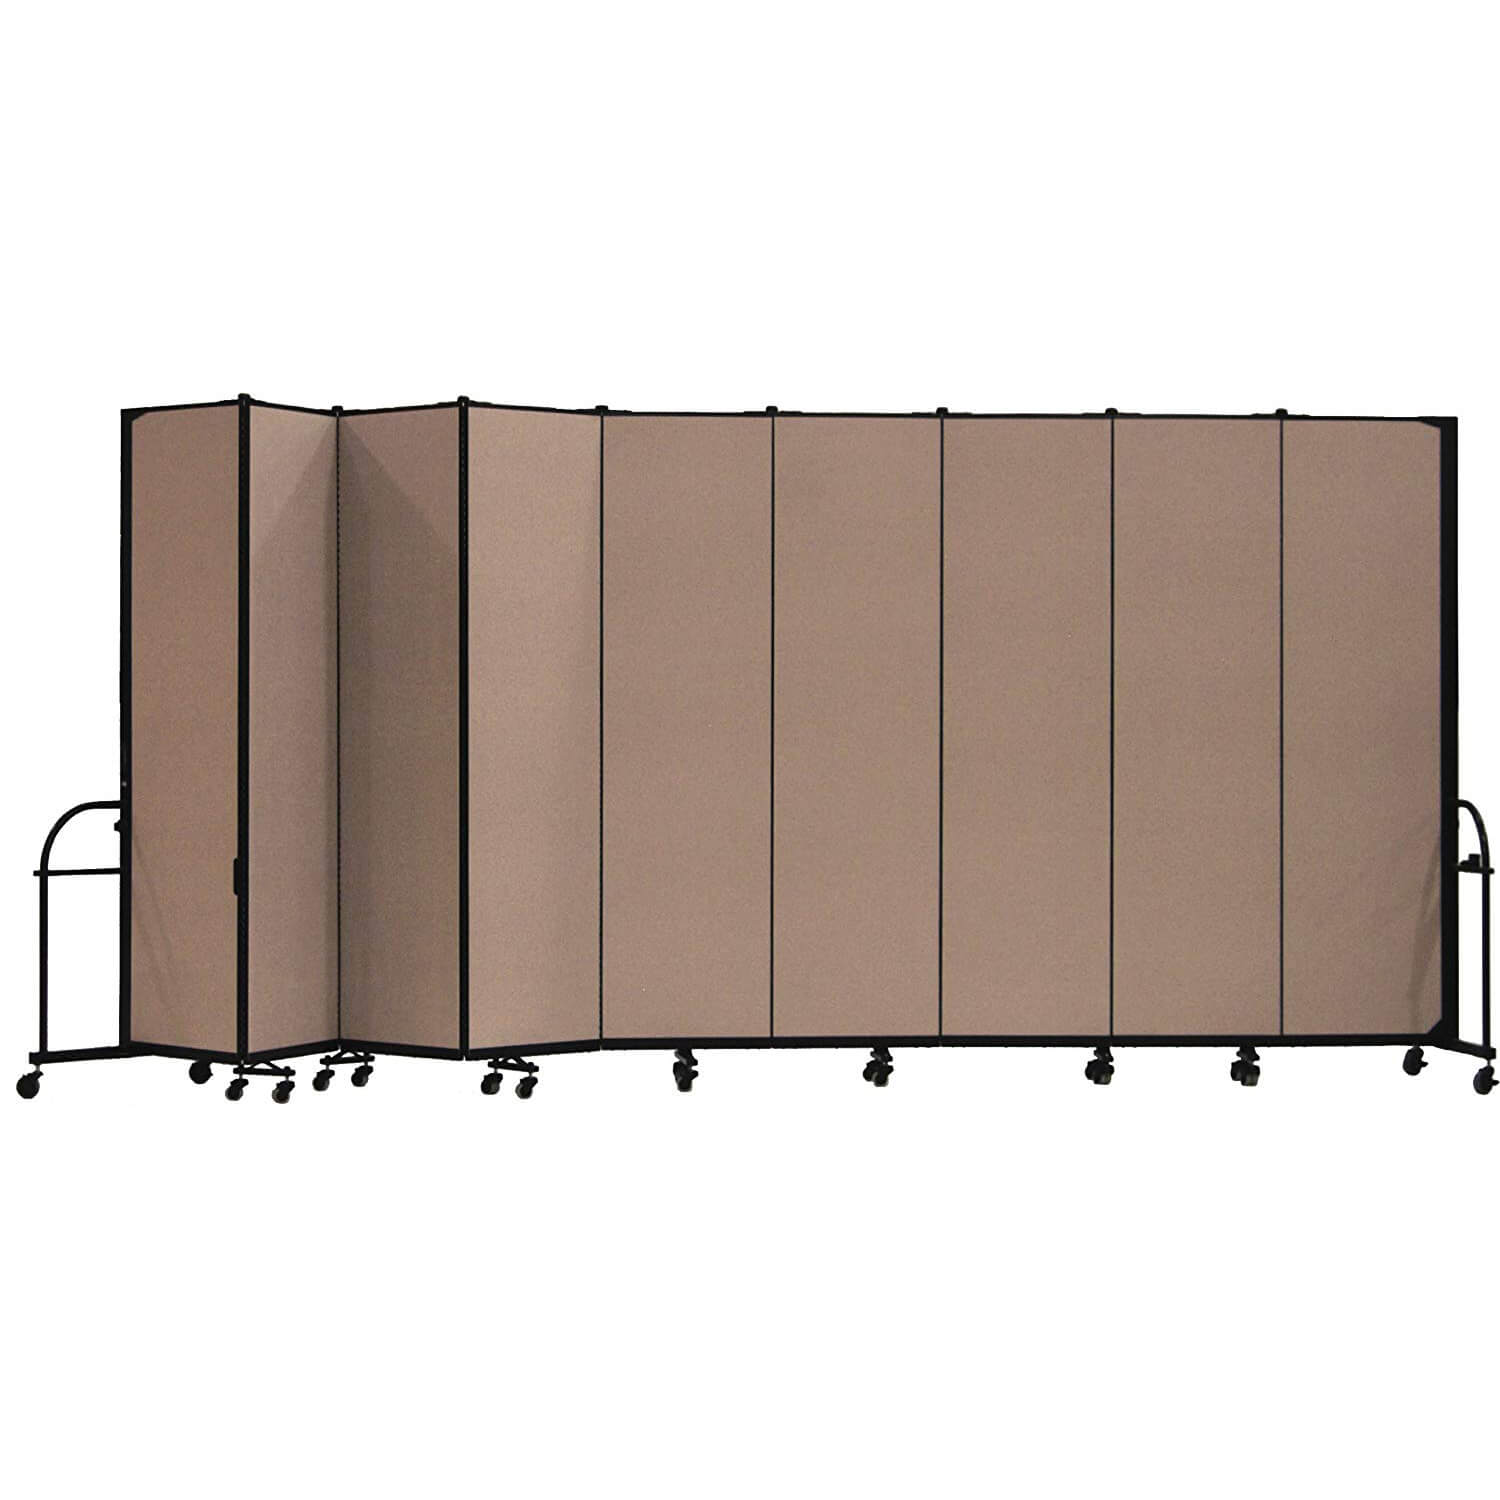 portable-room-dividers-screens-and-room-dividers.jpg